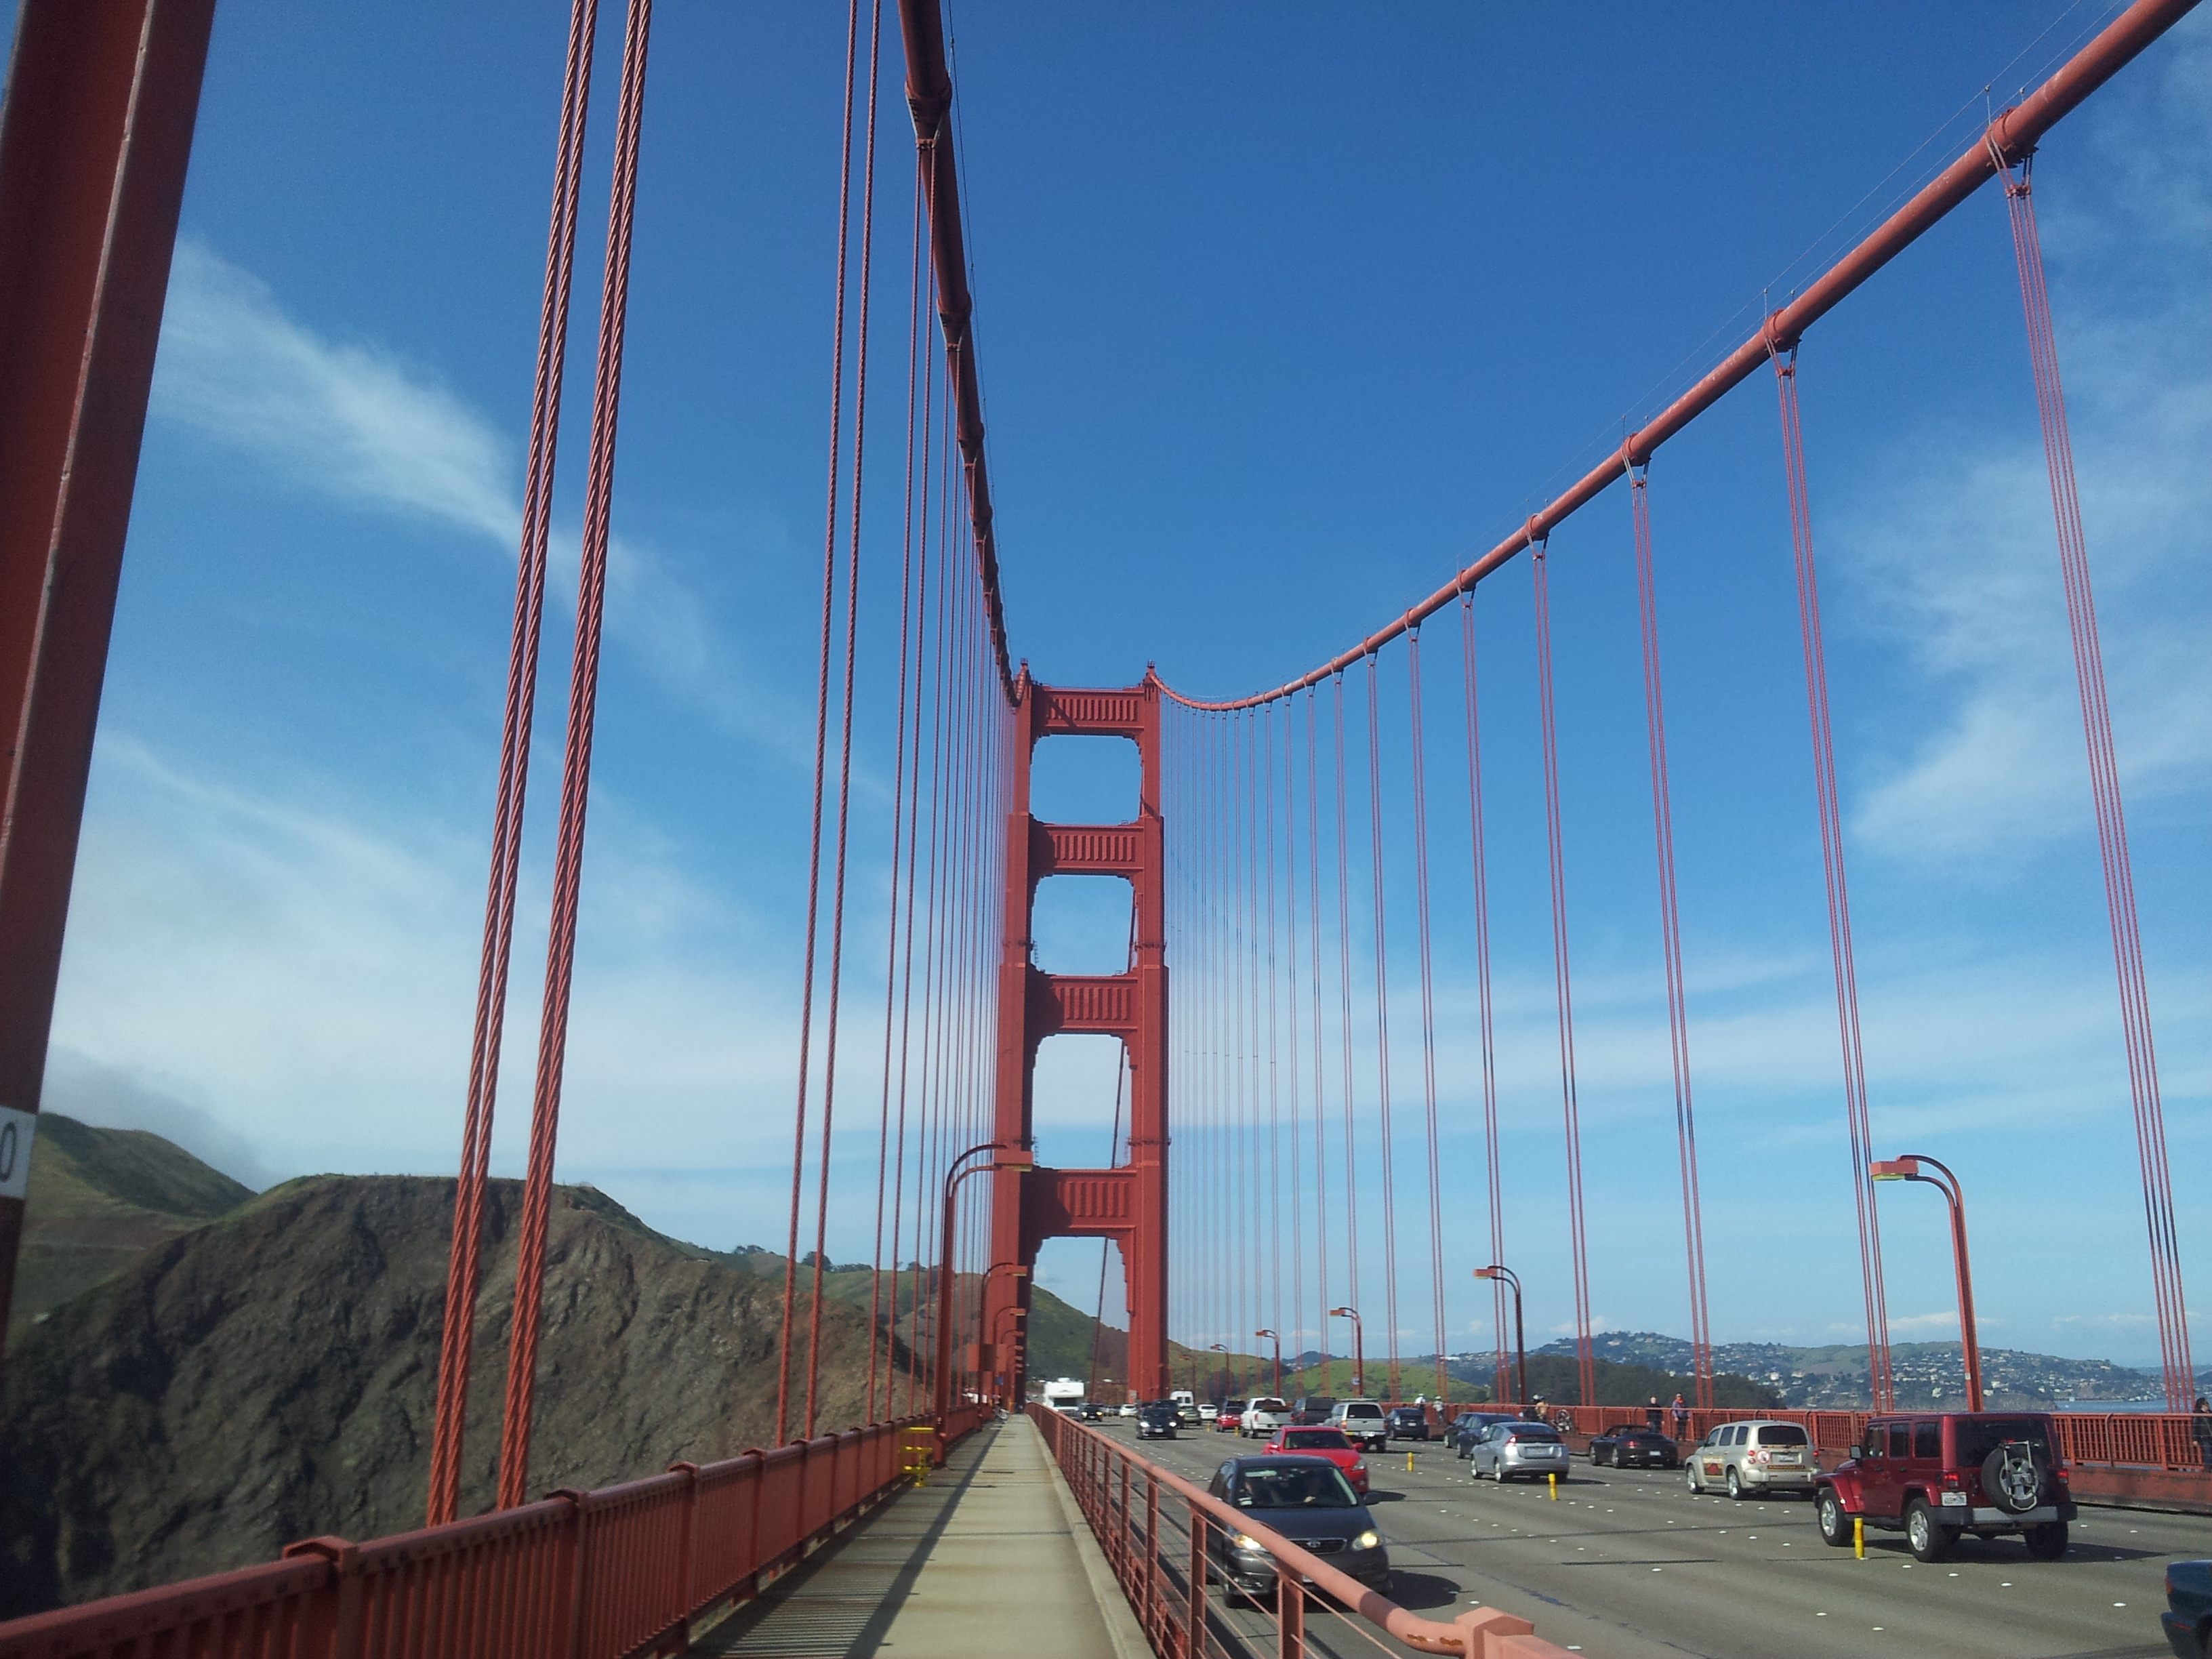 Biking the Golden gate was amazing! This photo really does it no justice either...